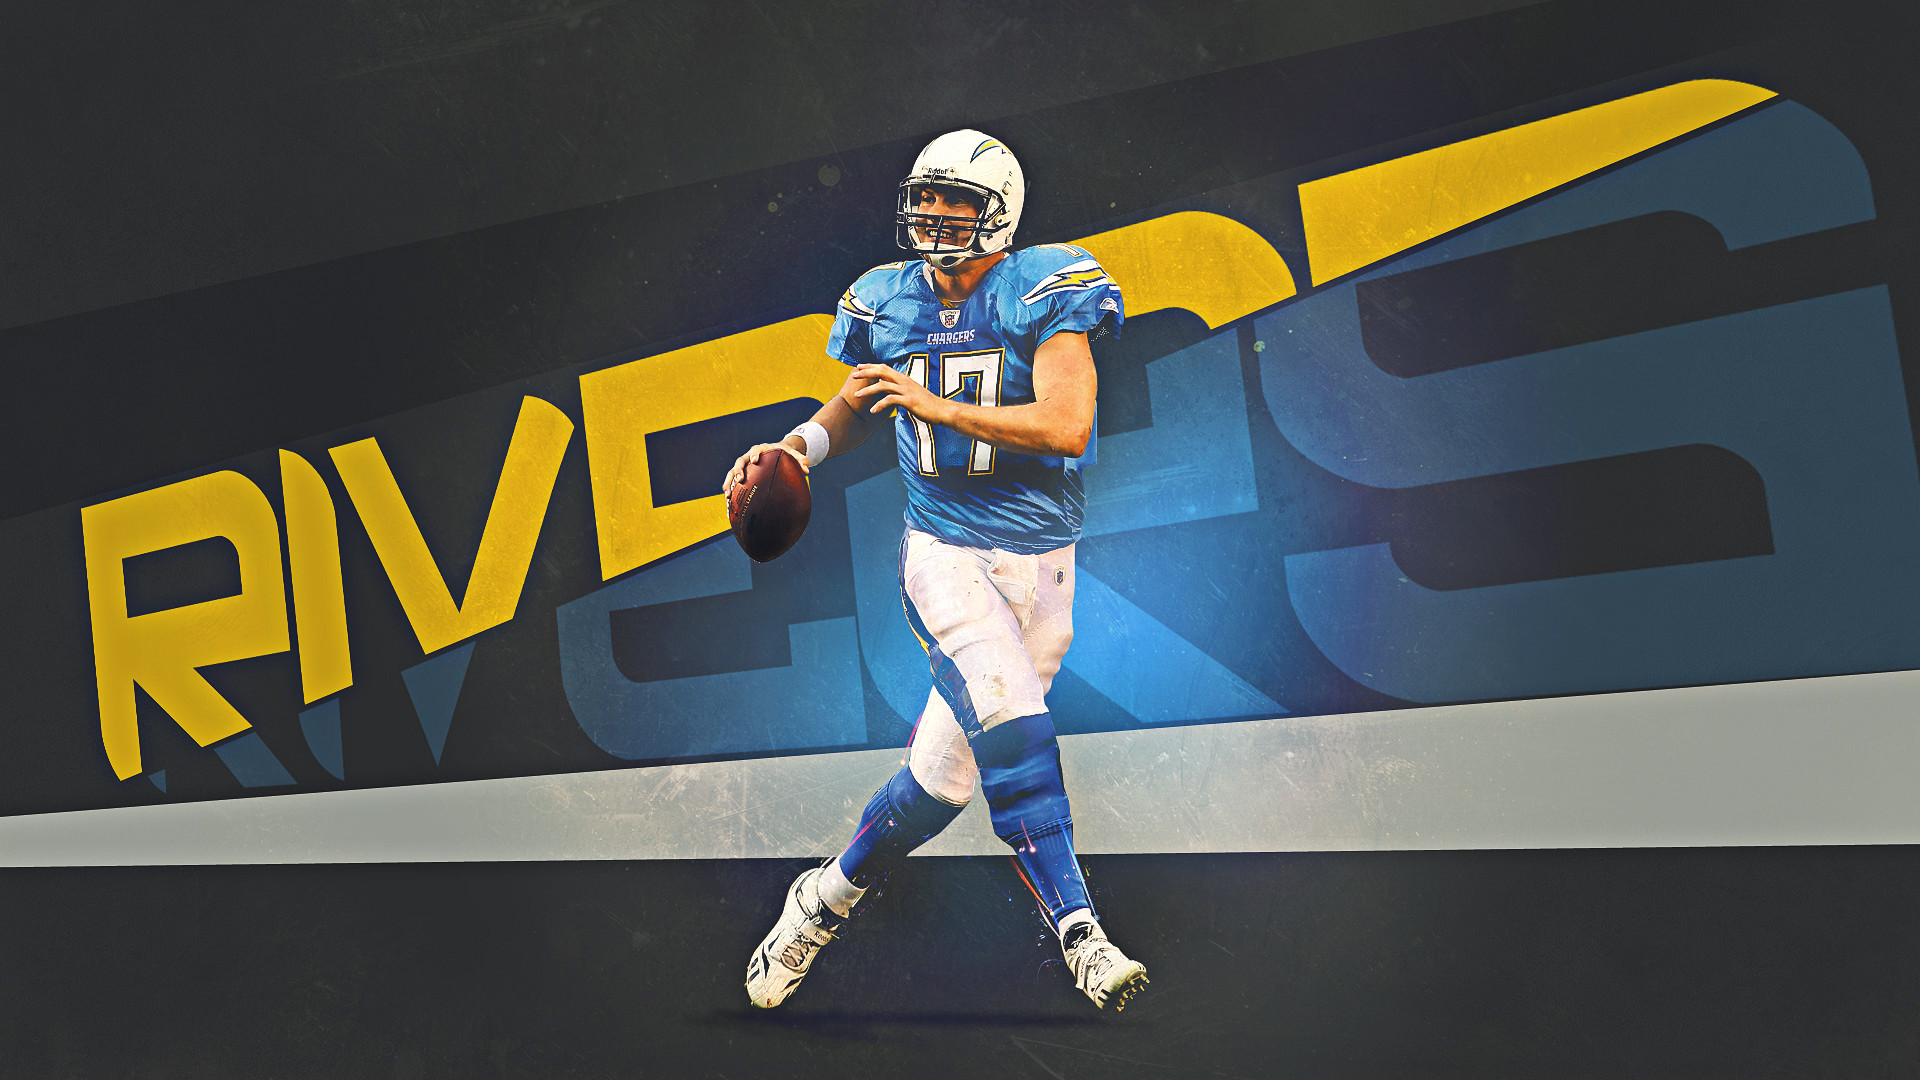 1920x1080 San-diego-chargers-players-wallpaper-